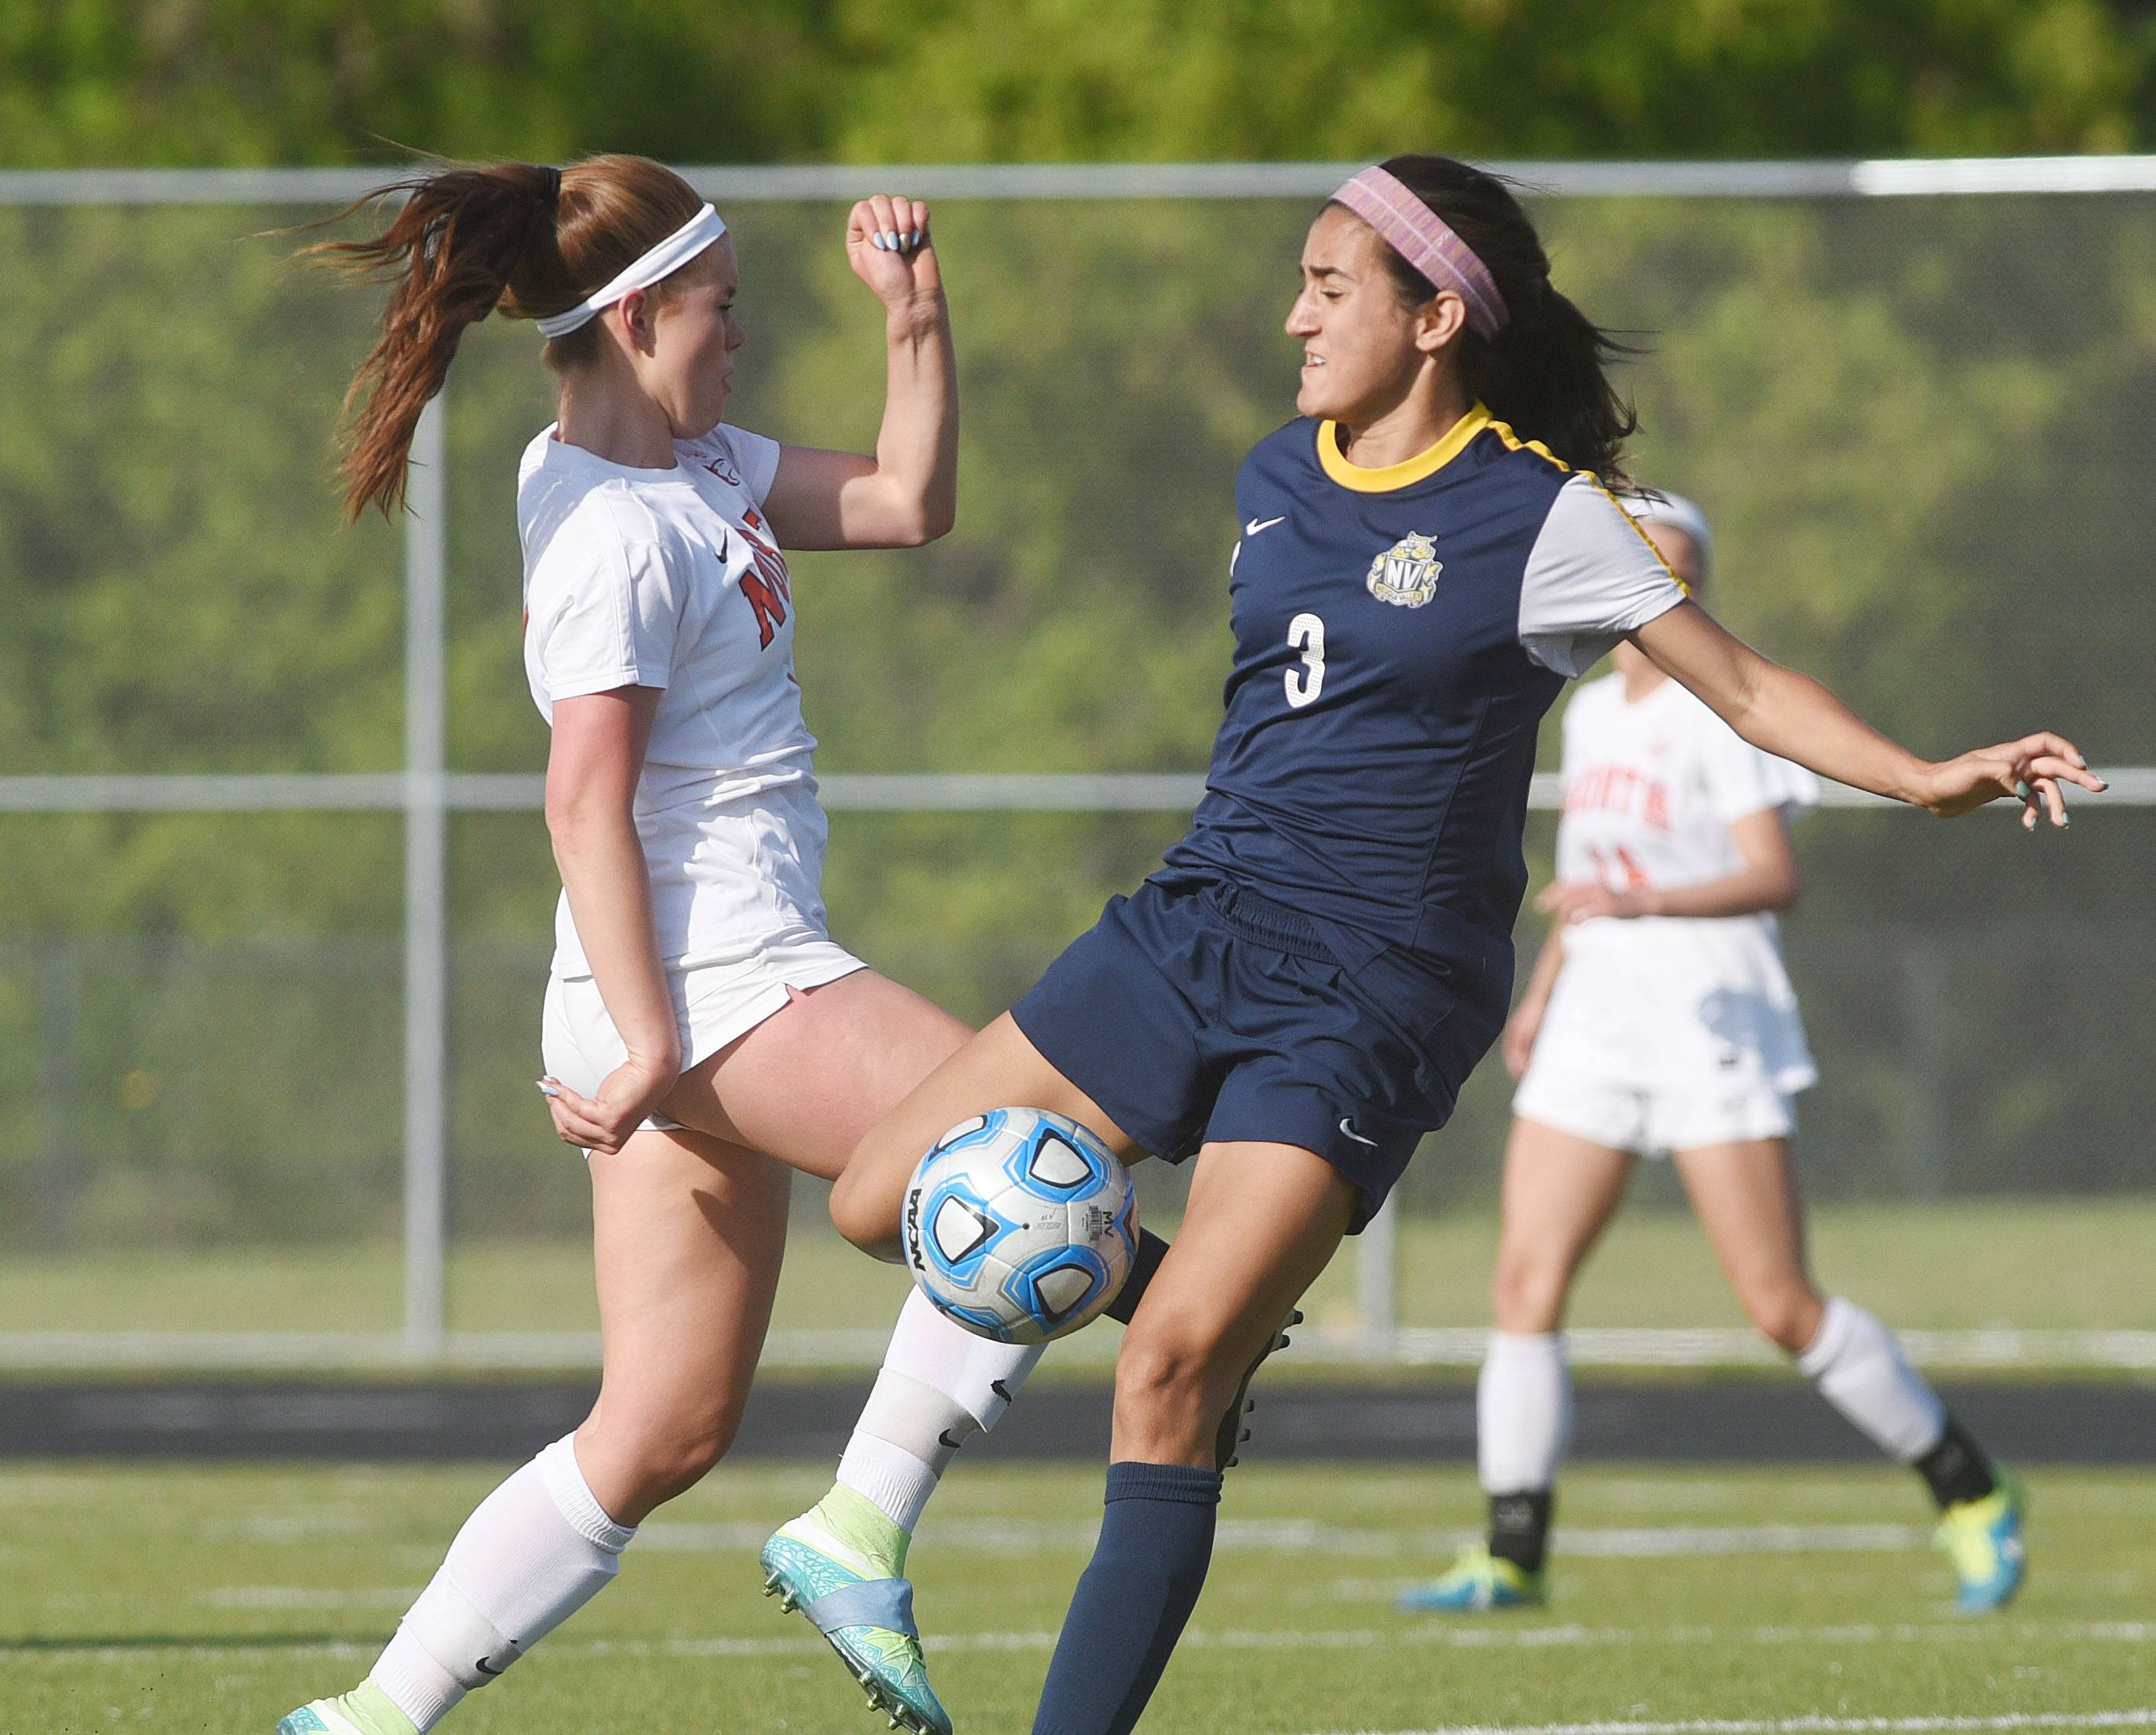 Girls soccer: Top-ranked Naperville North eludes Neuqua Valley